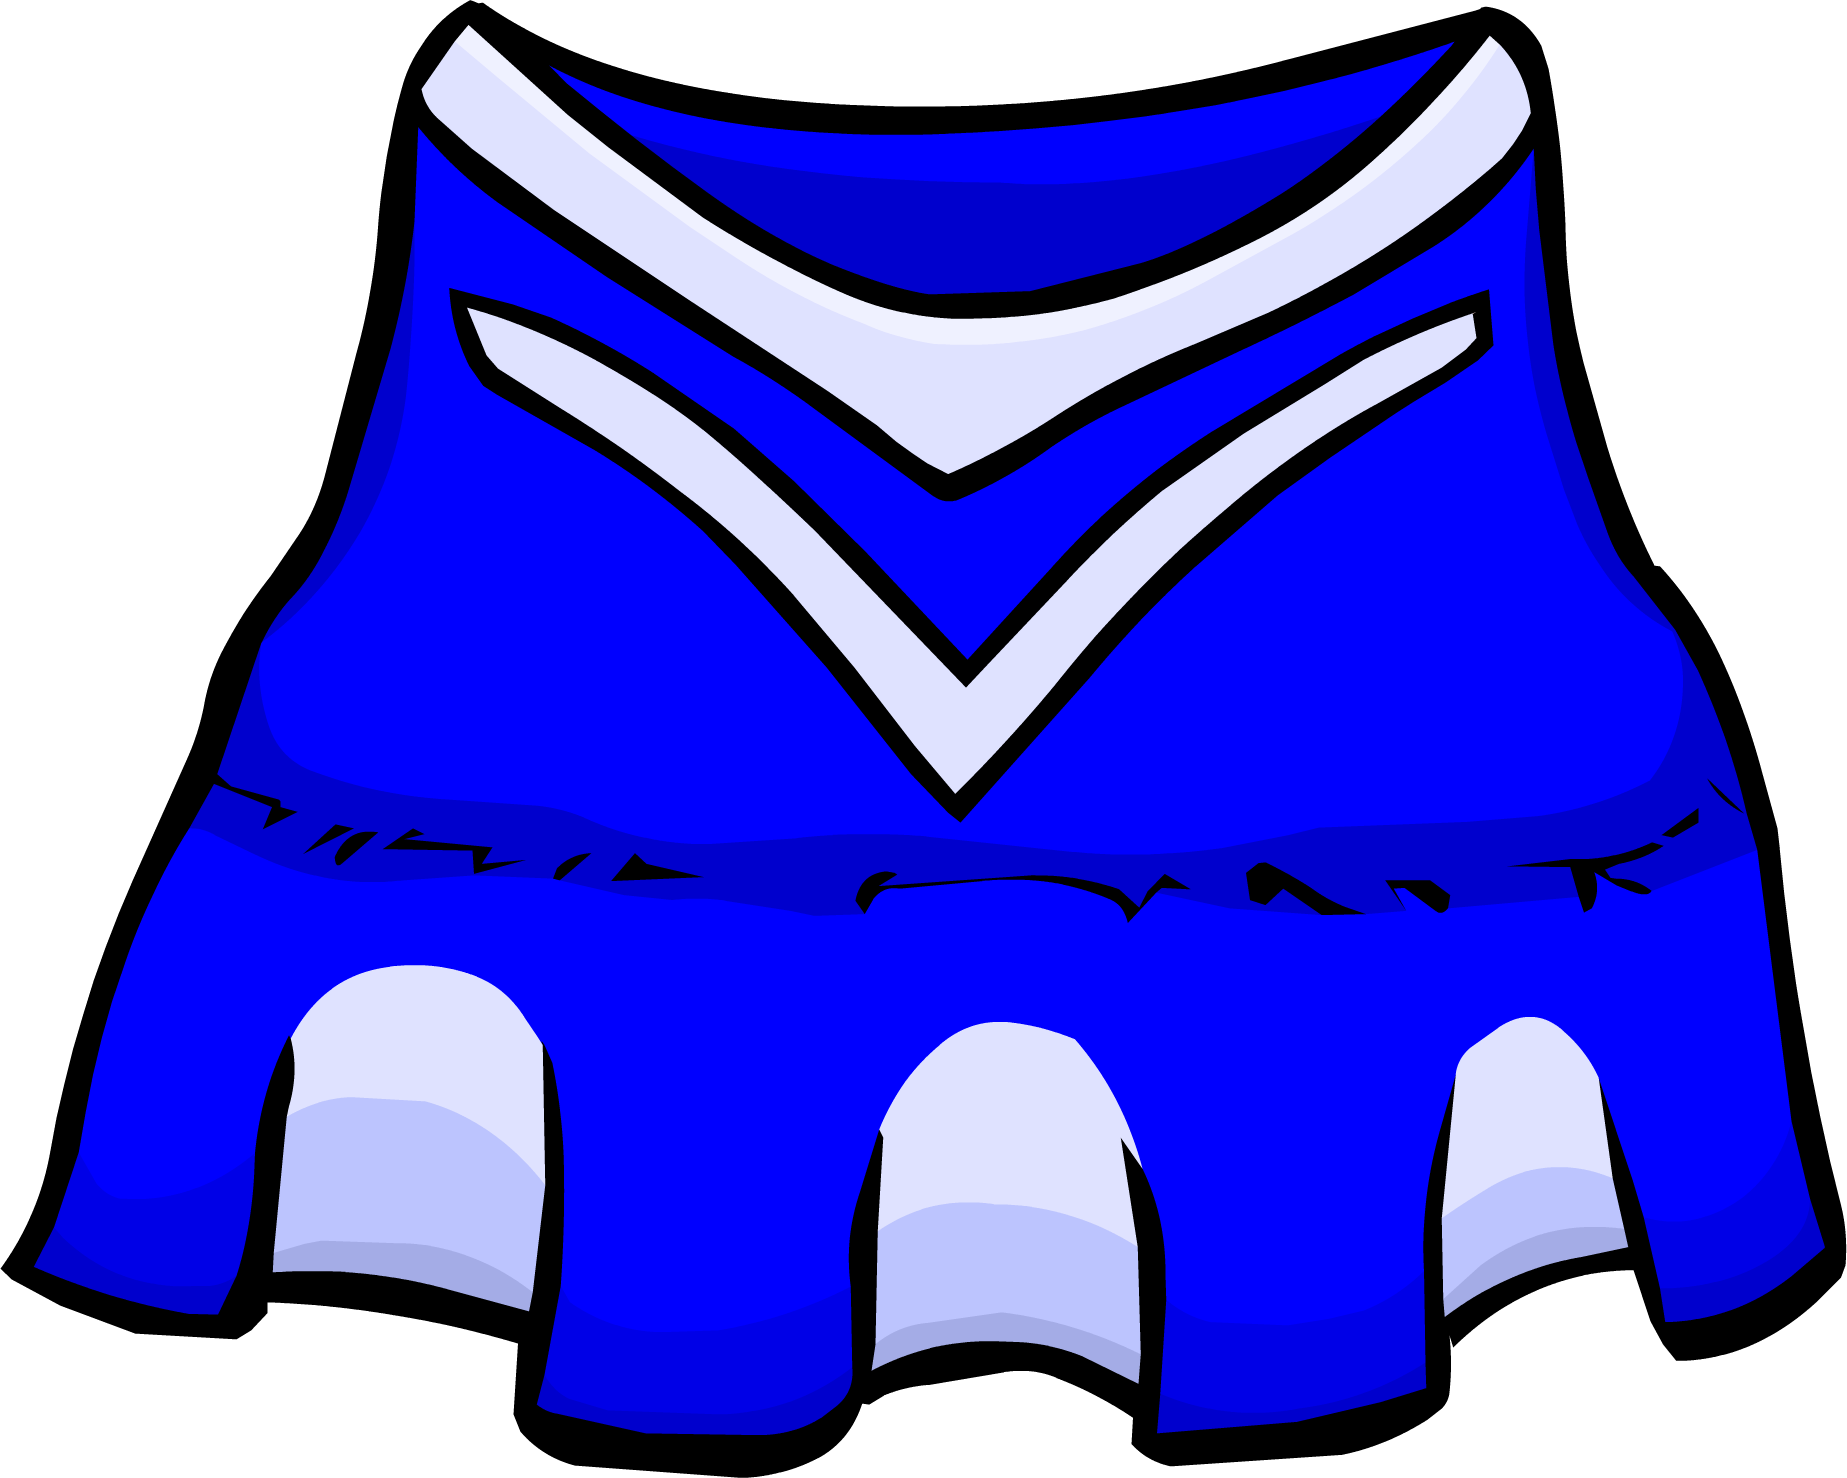 Cheerleader outfit club penguin. Clipart backpack blue item